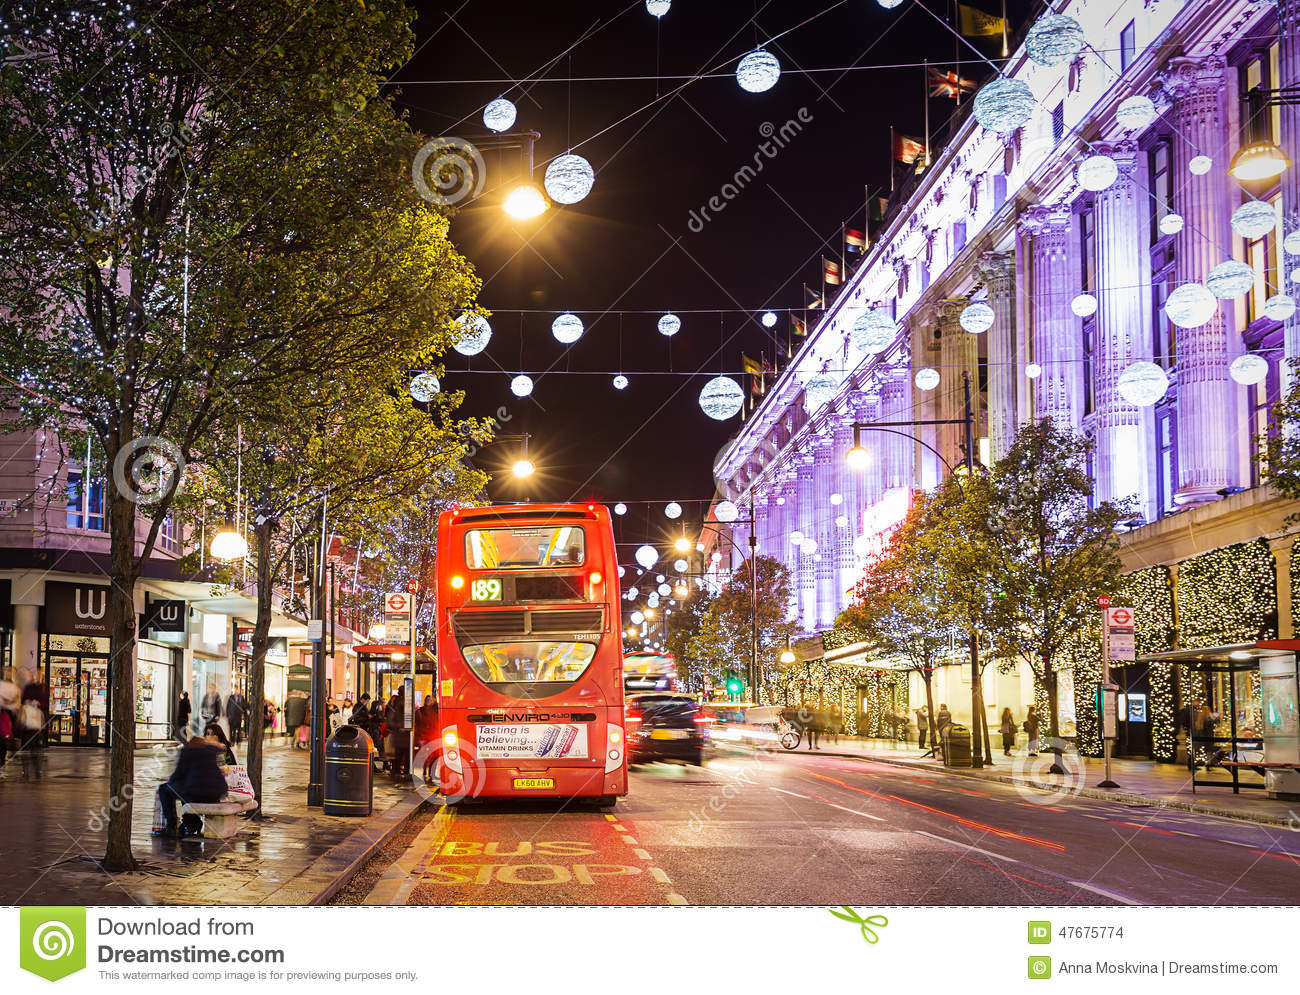 #A0602B 13 November 2014 View On Oxford Street London Decorated  5907 decoration de noel londres 2015 1300x995 px @ aertt.com